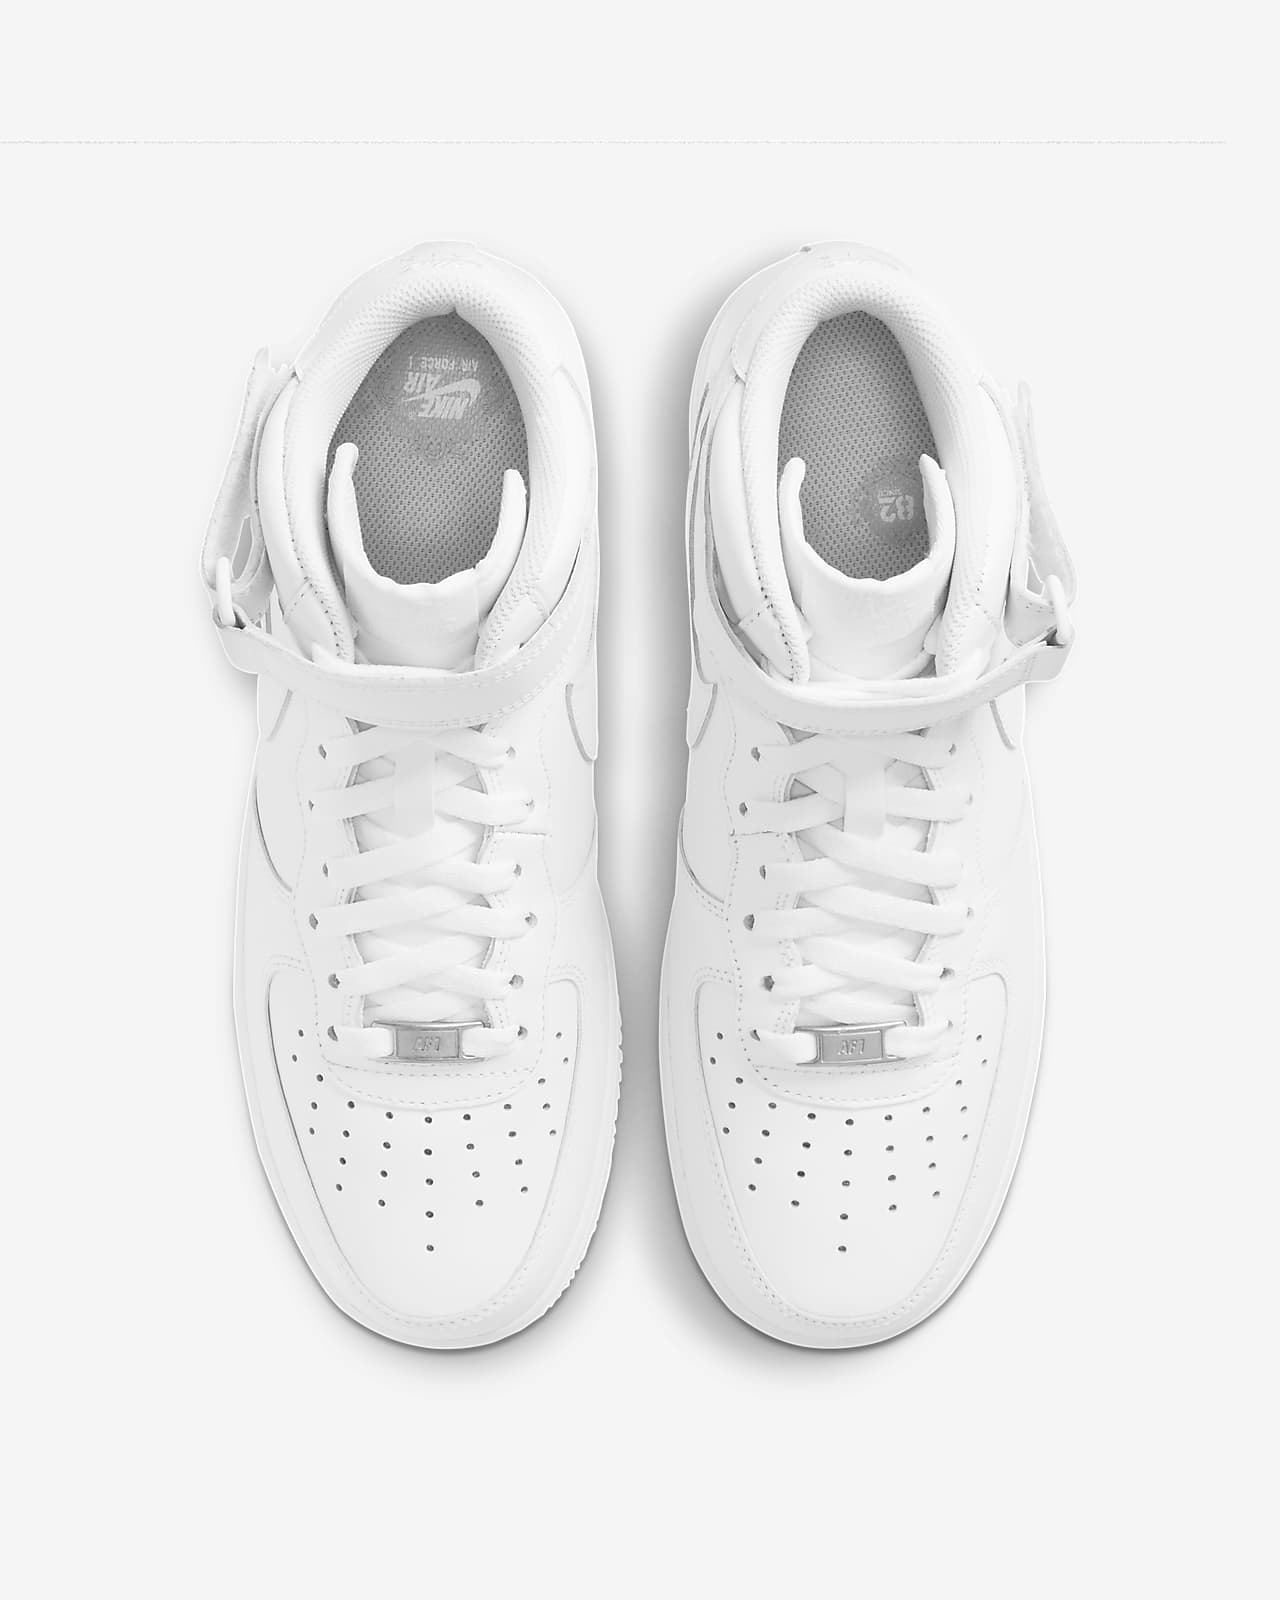 Chaussure Nike Air Force 1 Mid '07 pour Homme. Nike LU